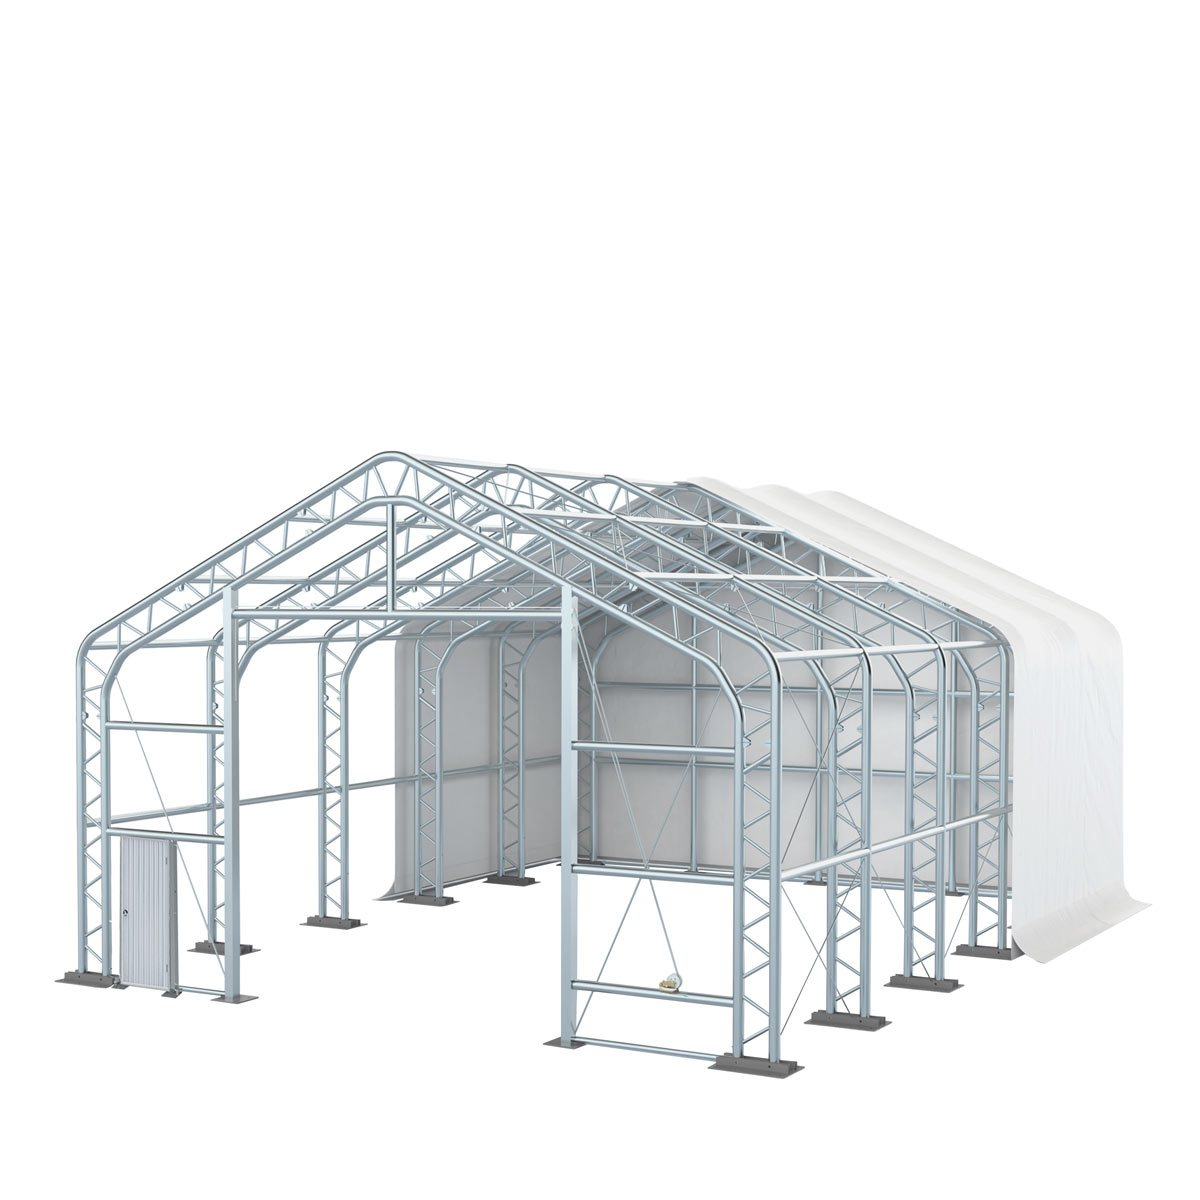 Pro Series 30' x 40' Dual Truss Storage Shelter with Heavy Duty 17oz PVC Fabric